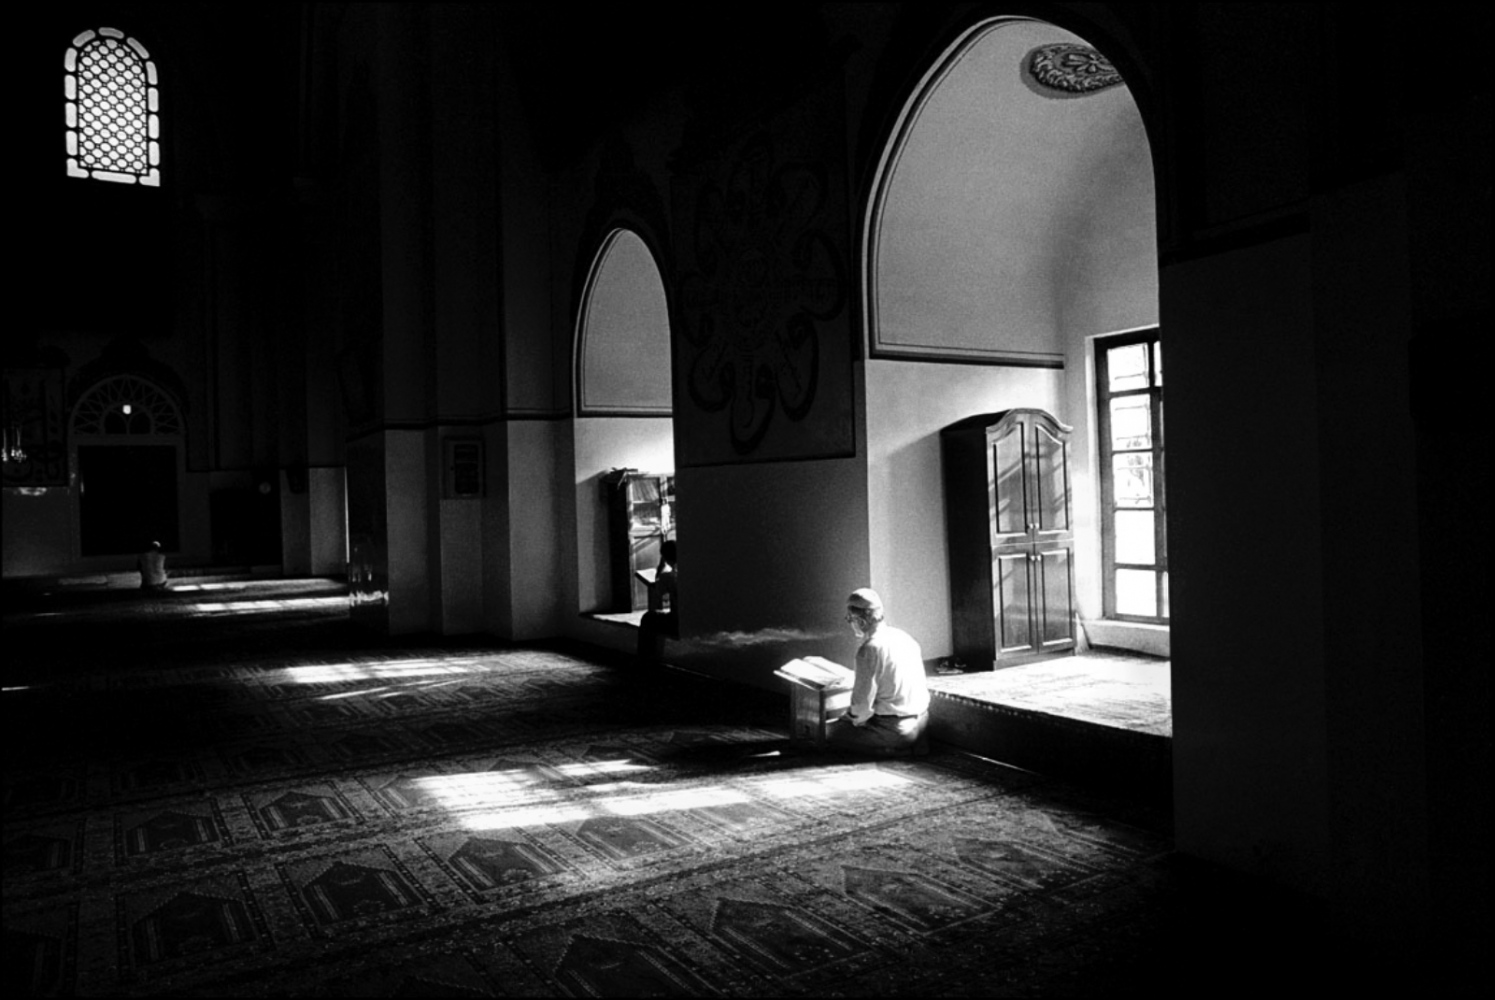 Mosque, Turkey, Summer 1997